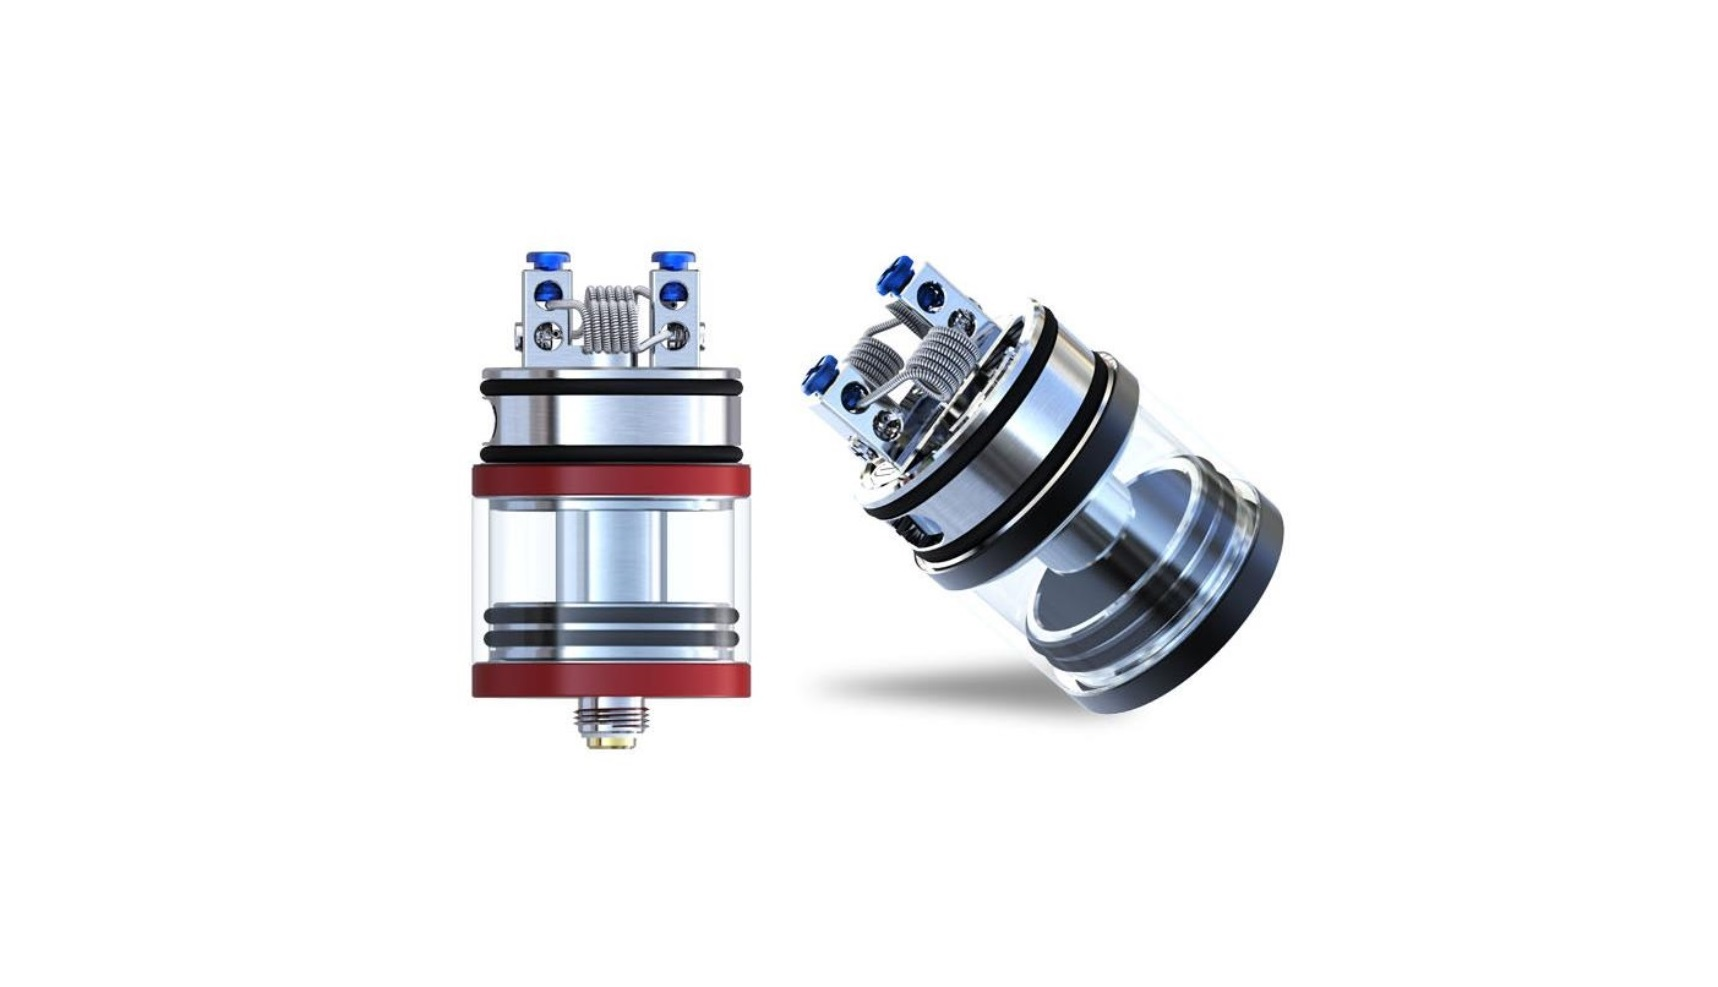 ijoy limitless RDTA coils up